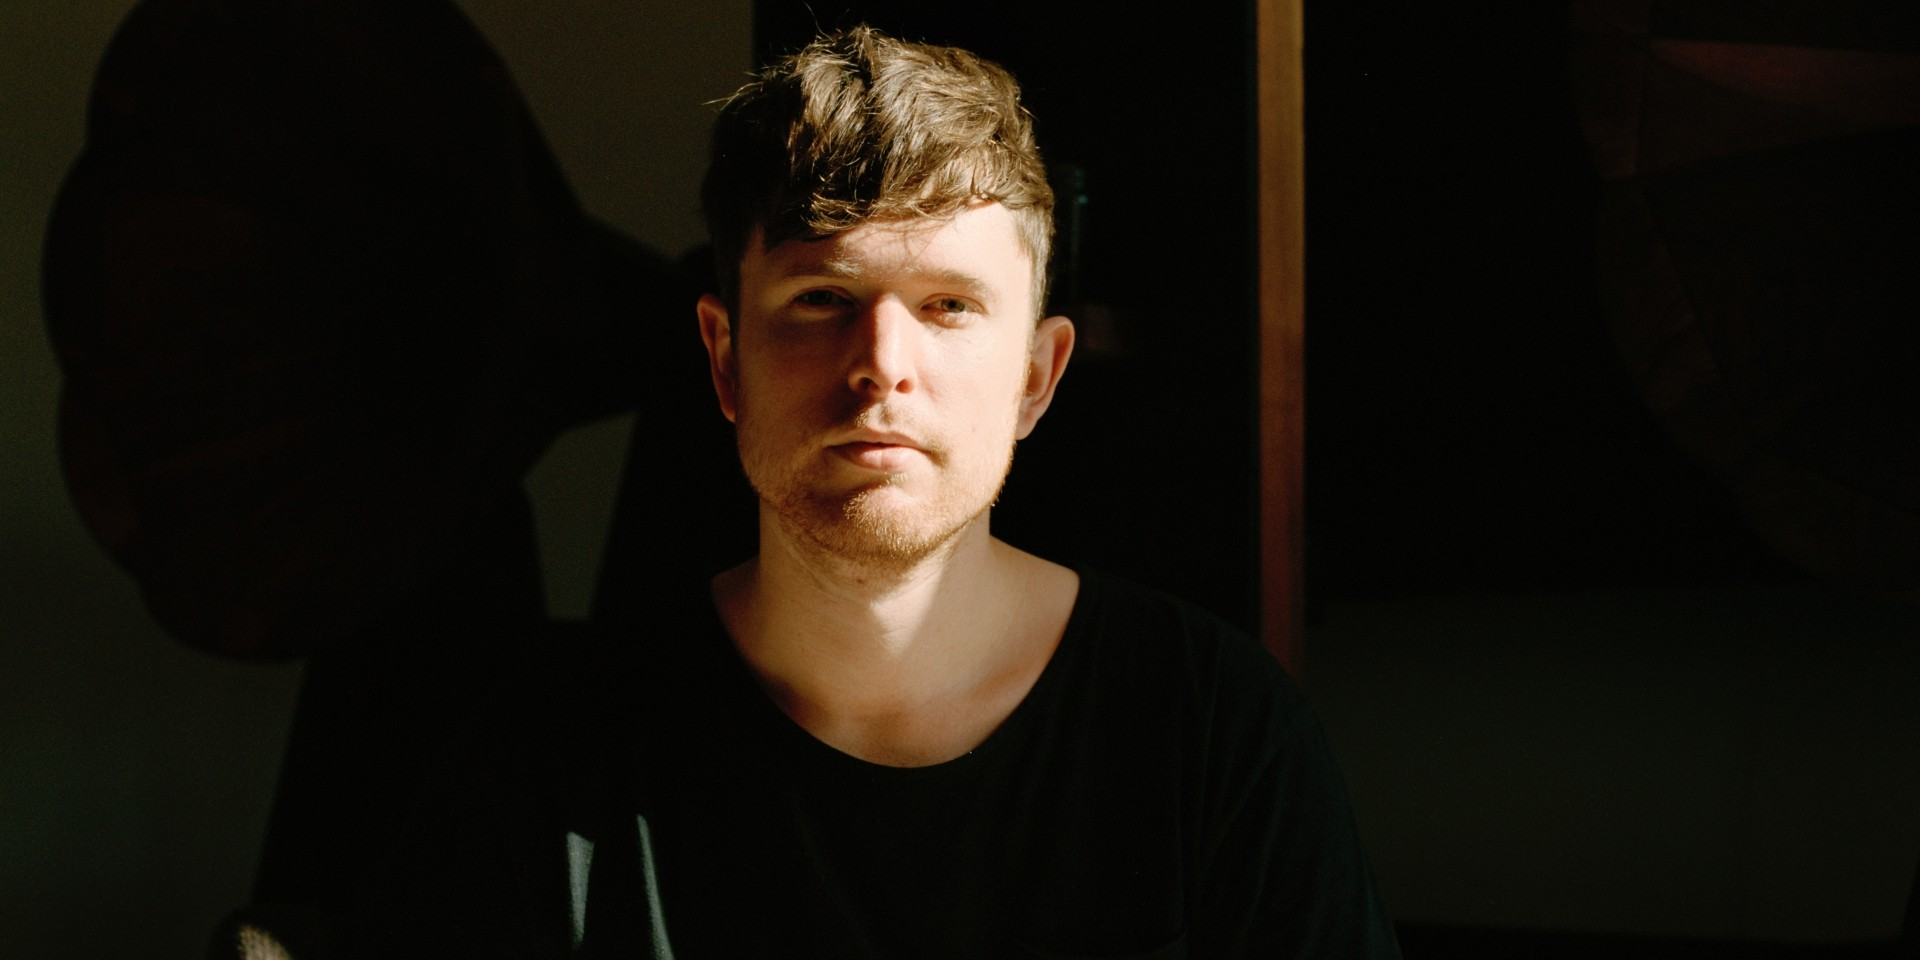 James Blake's new album Assume Form, will feature André 3000, Travis Scott and more